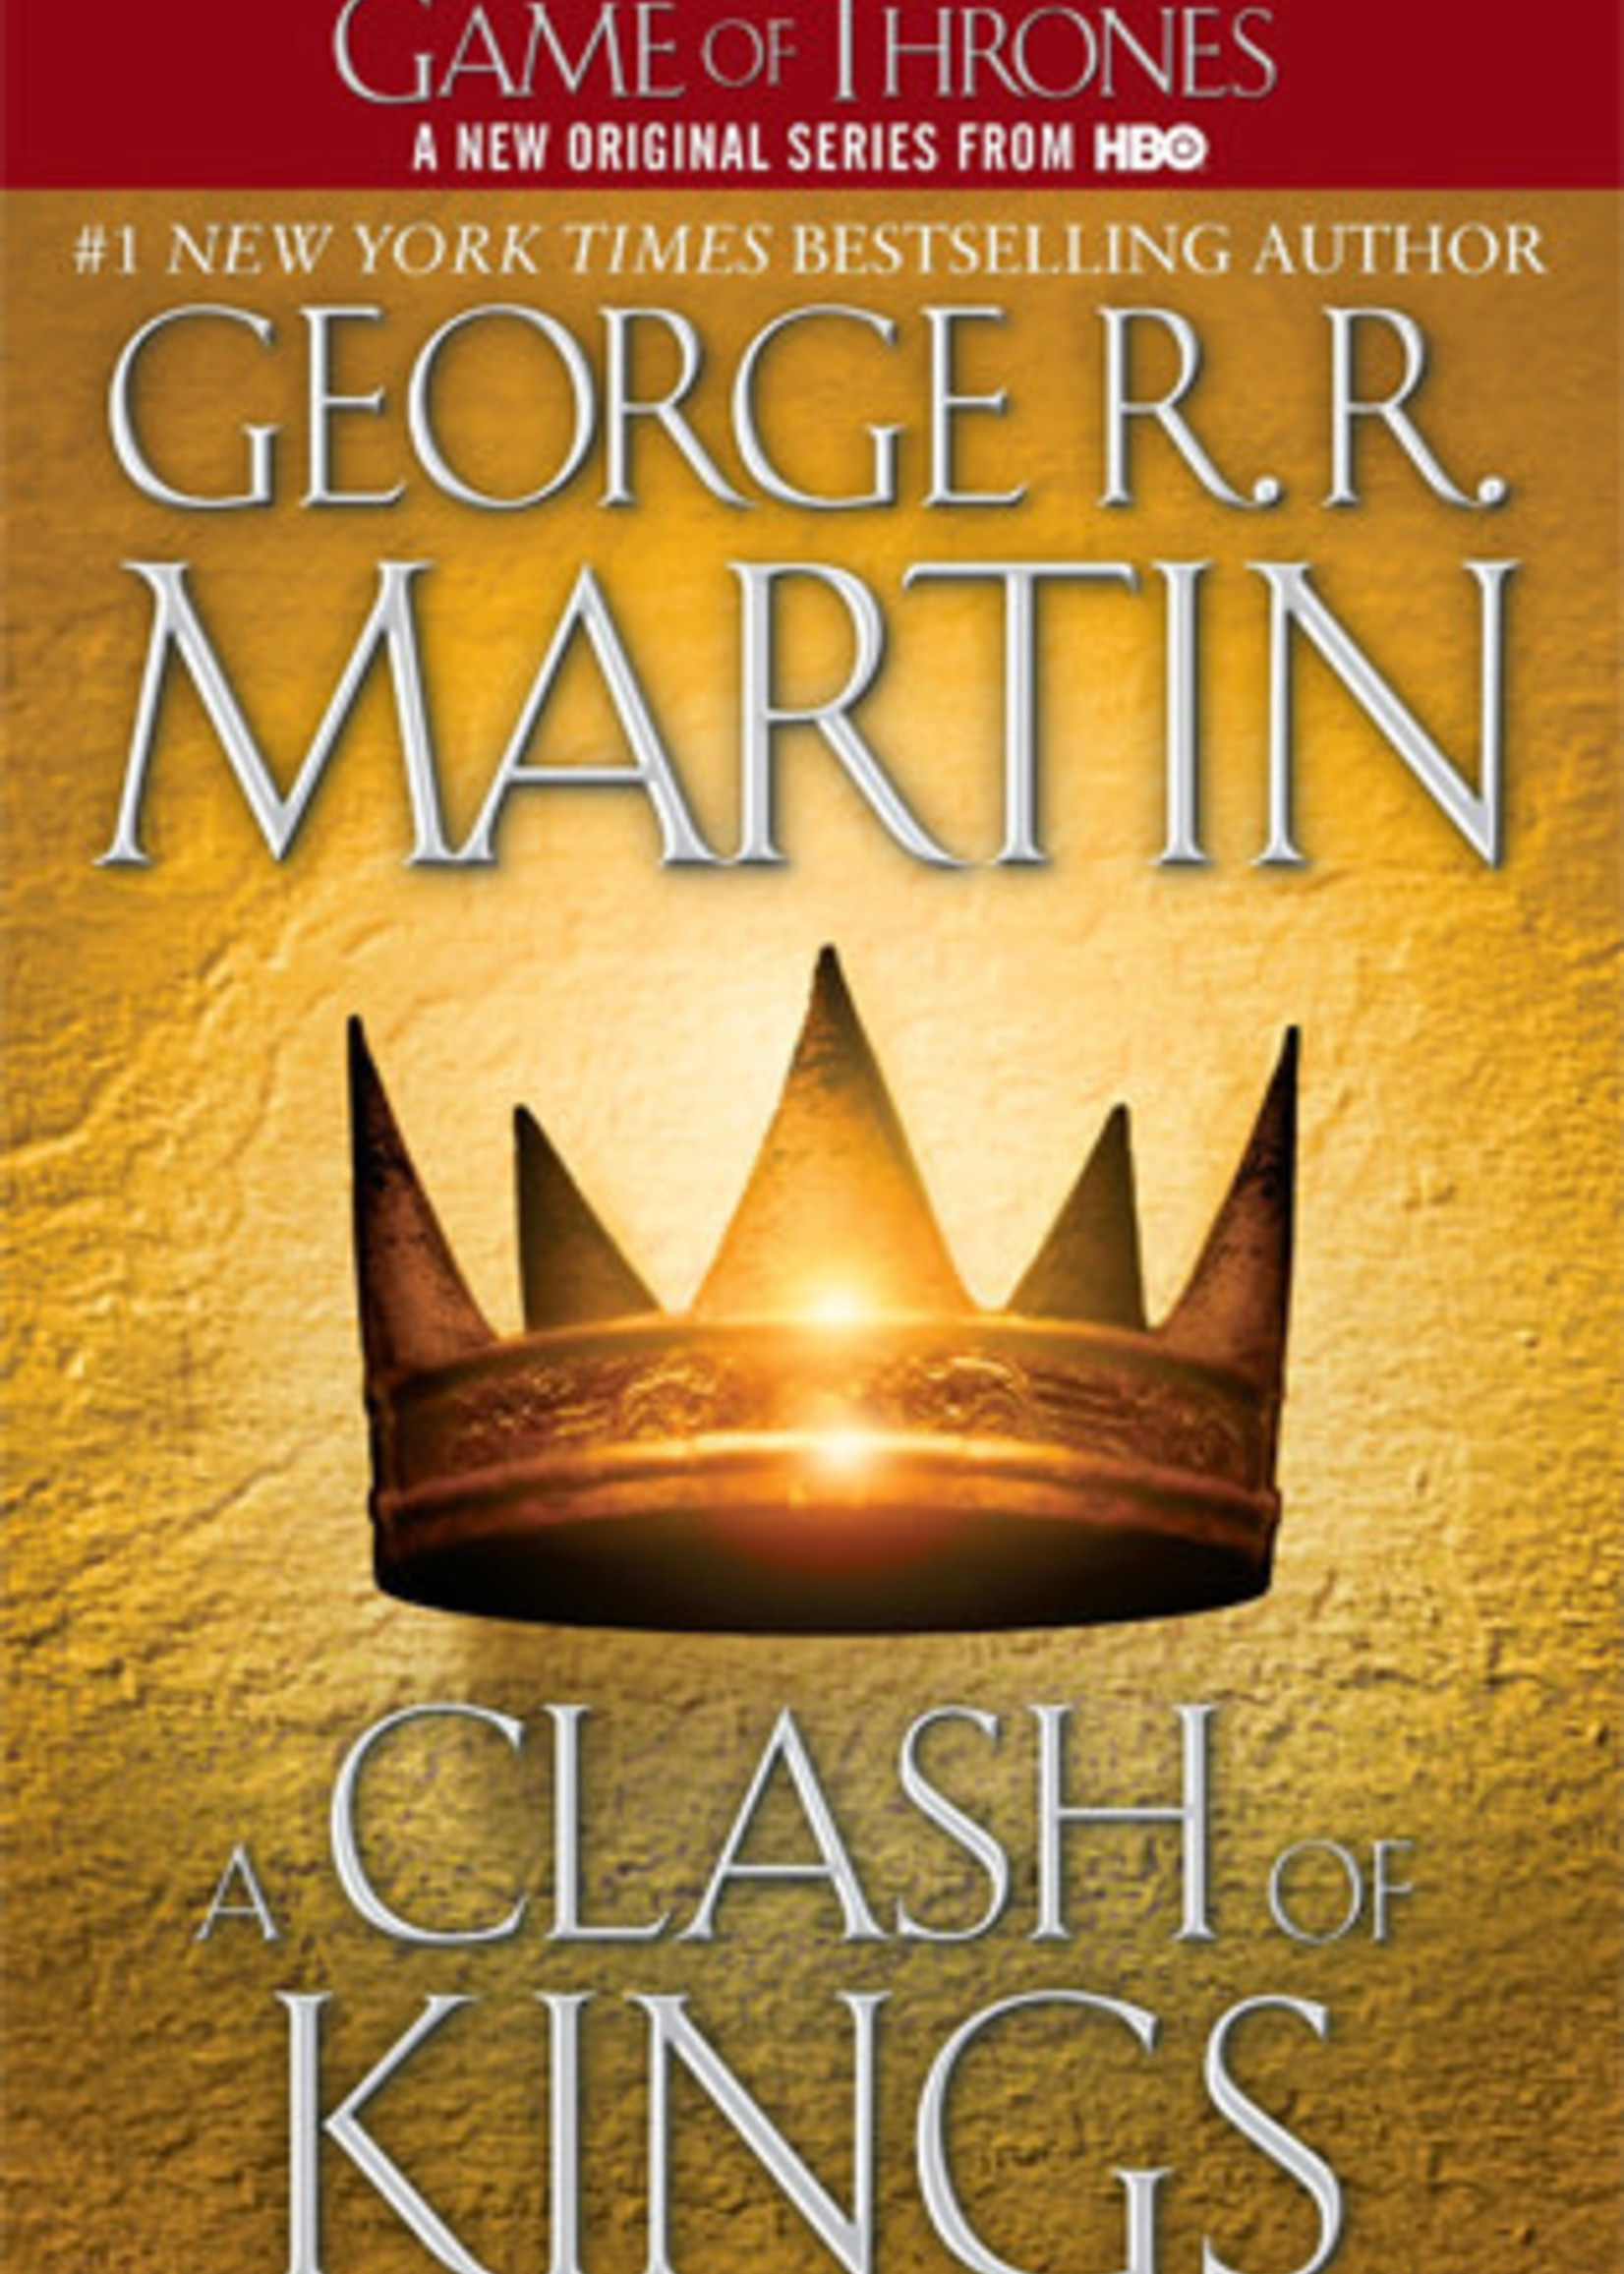 USED - A Clash of Kings by George R. R. Martin